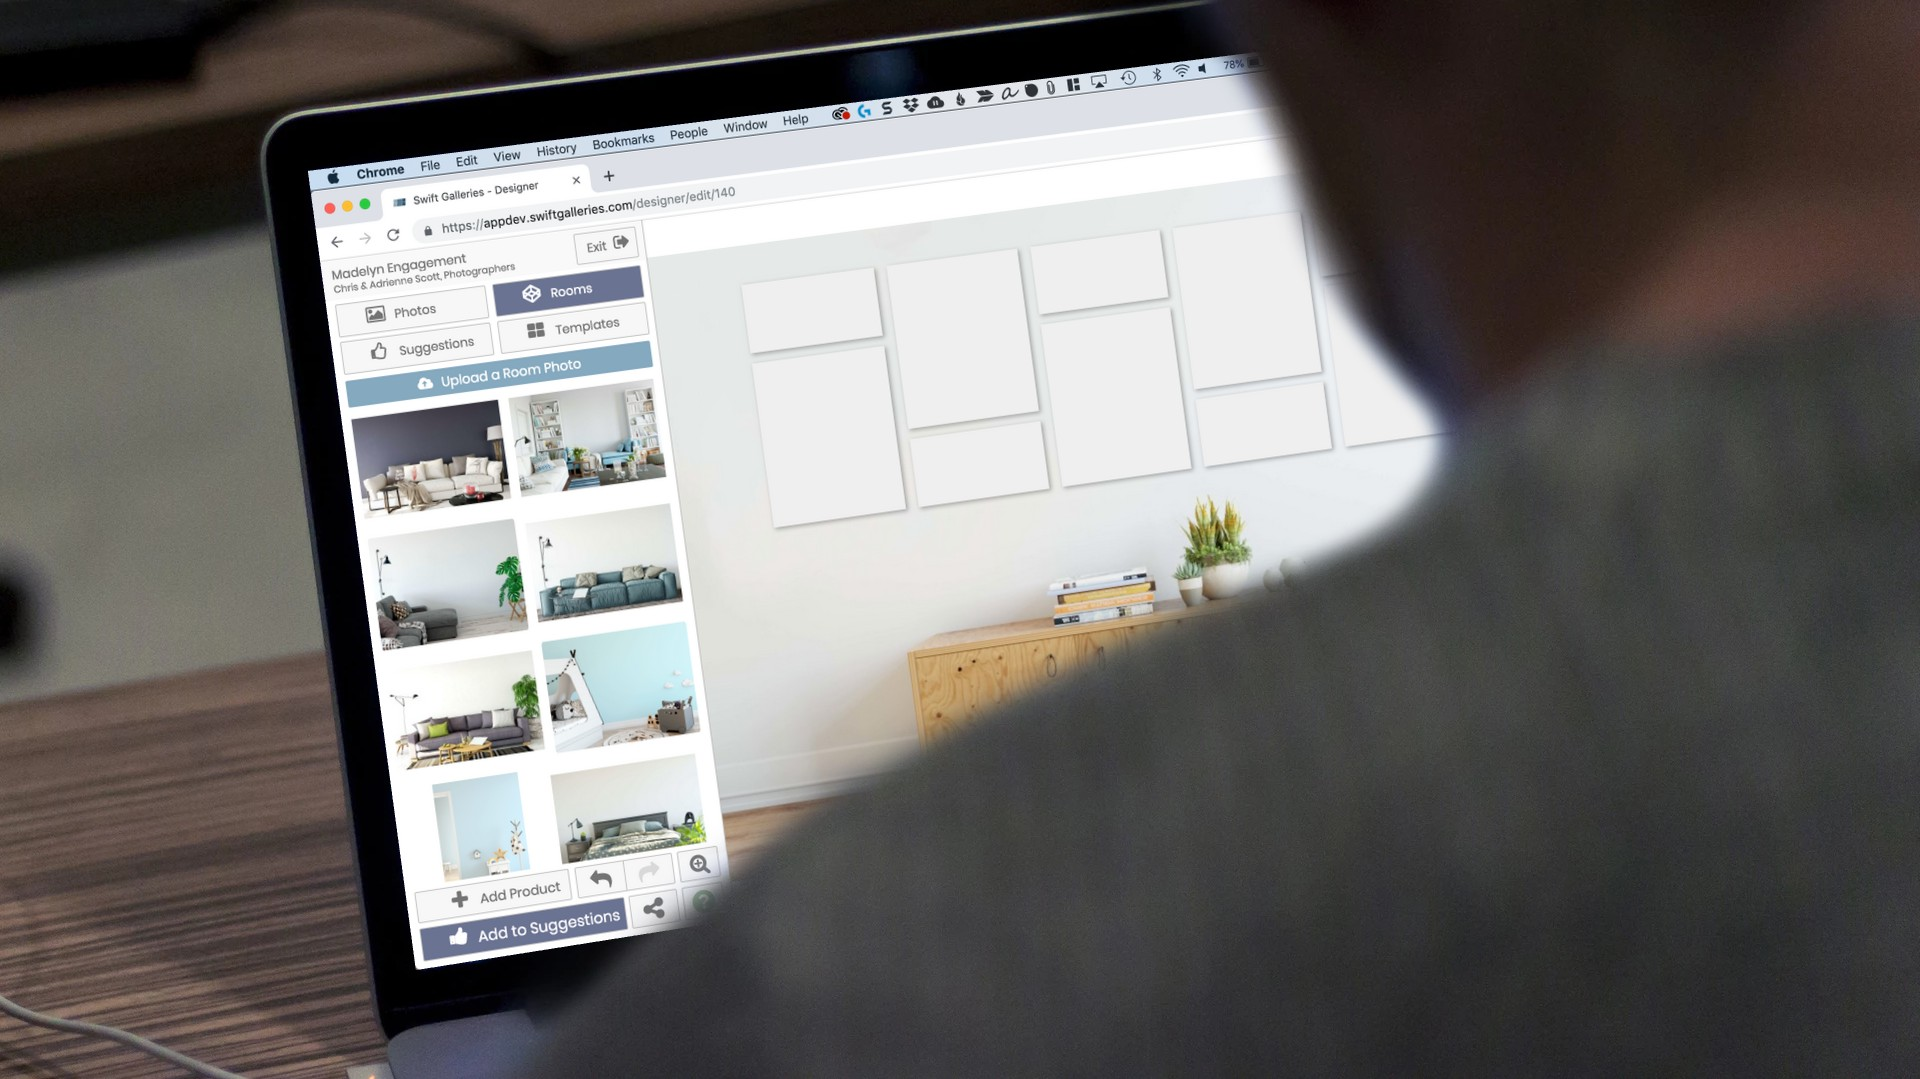 Over-the-shoulder shot of someone looking at the laptop while selecting Swift Galleries wall art templates